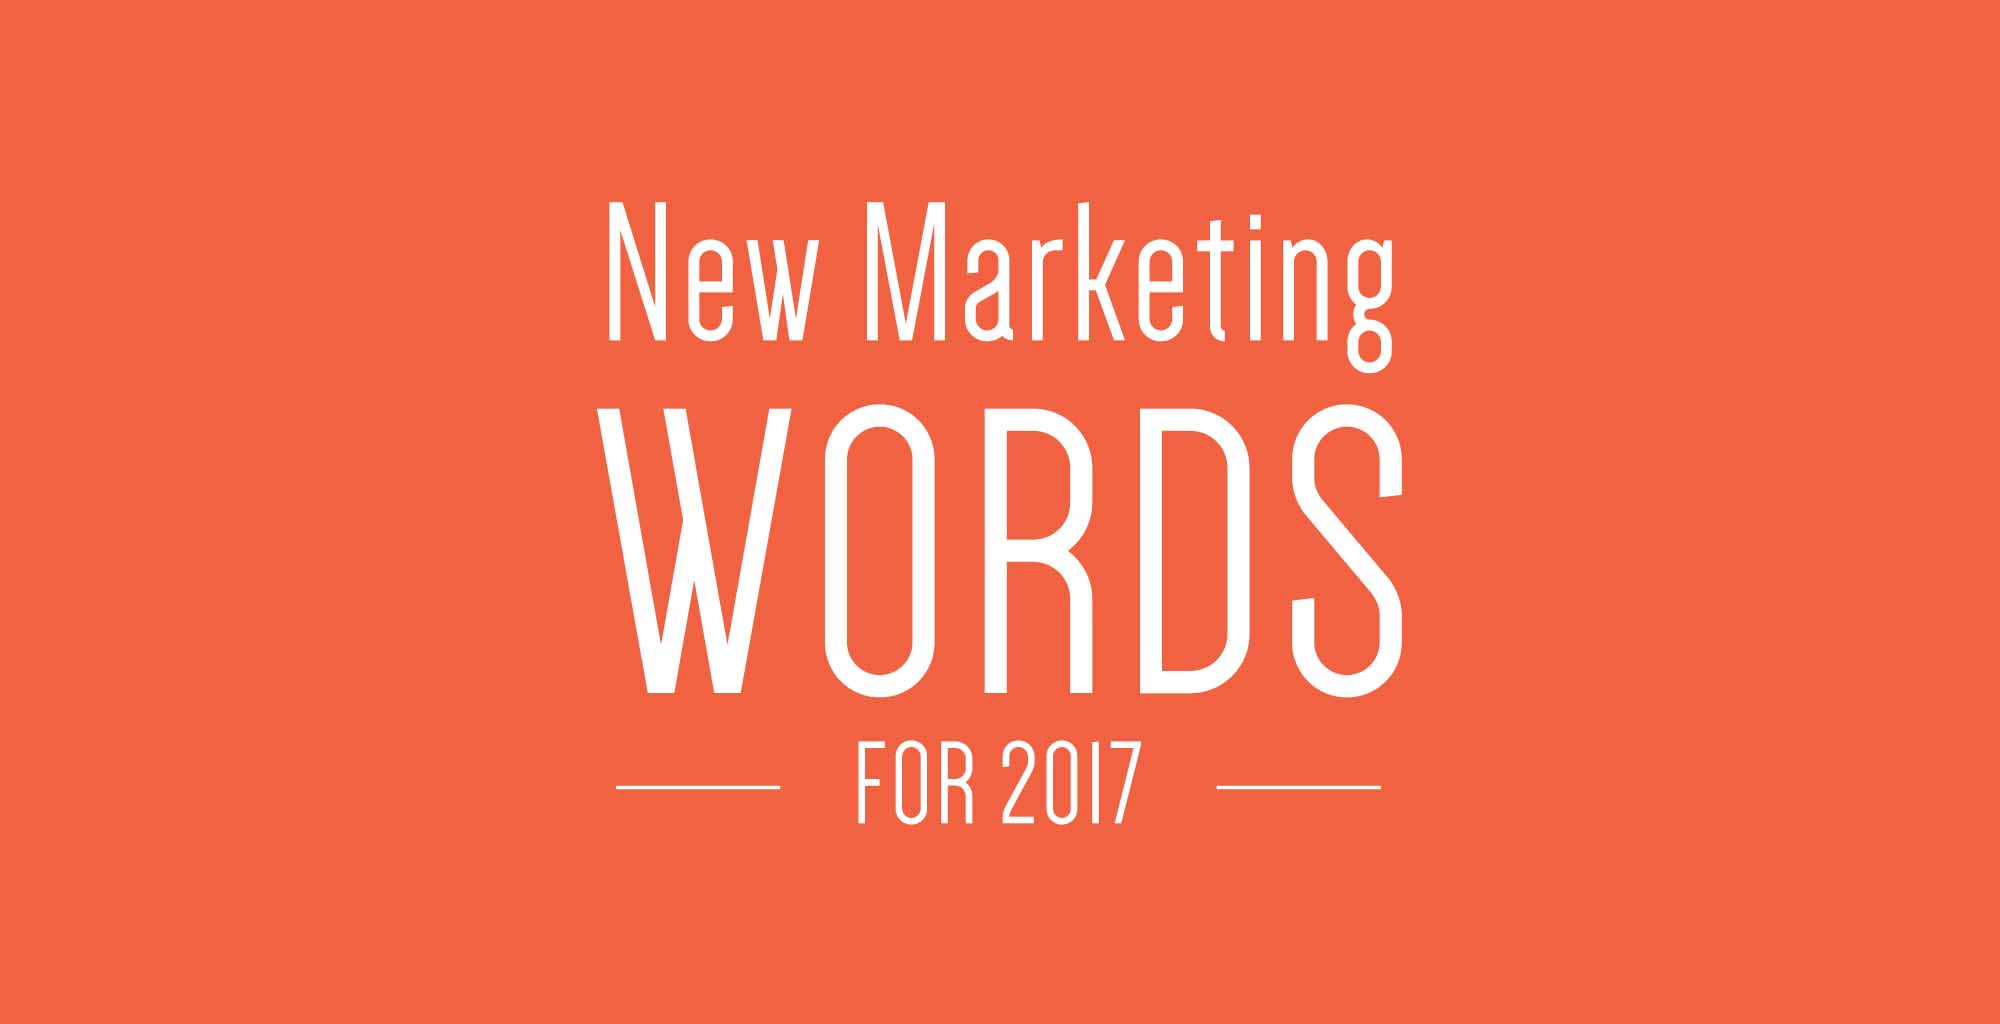 What did she just say? New Marketing Words for 2017